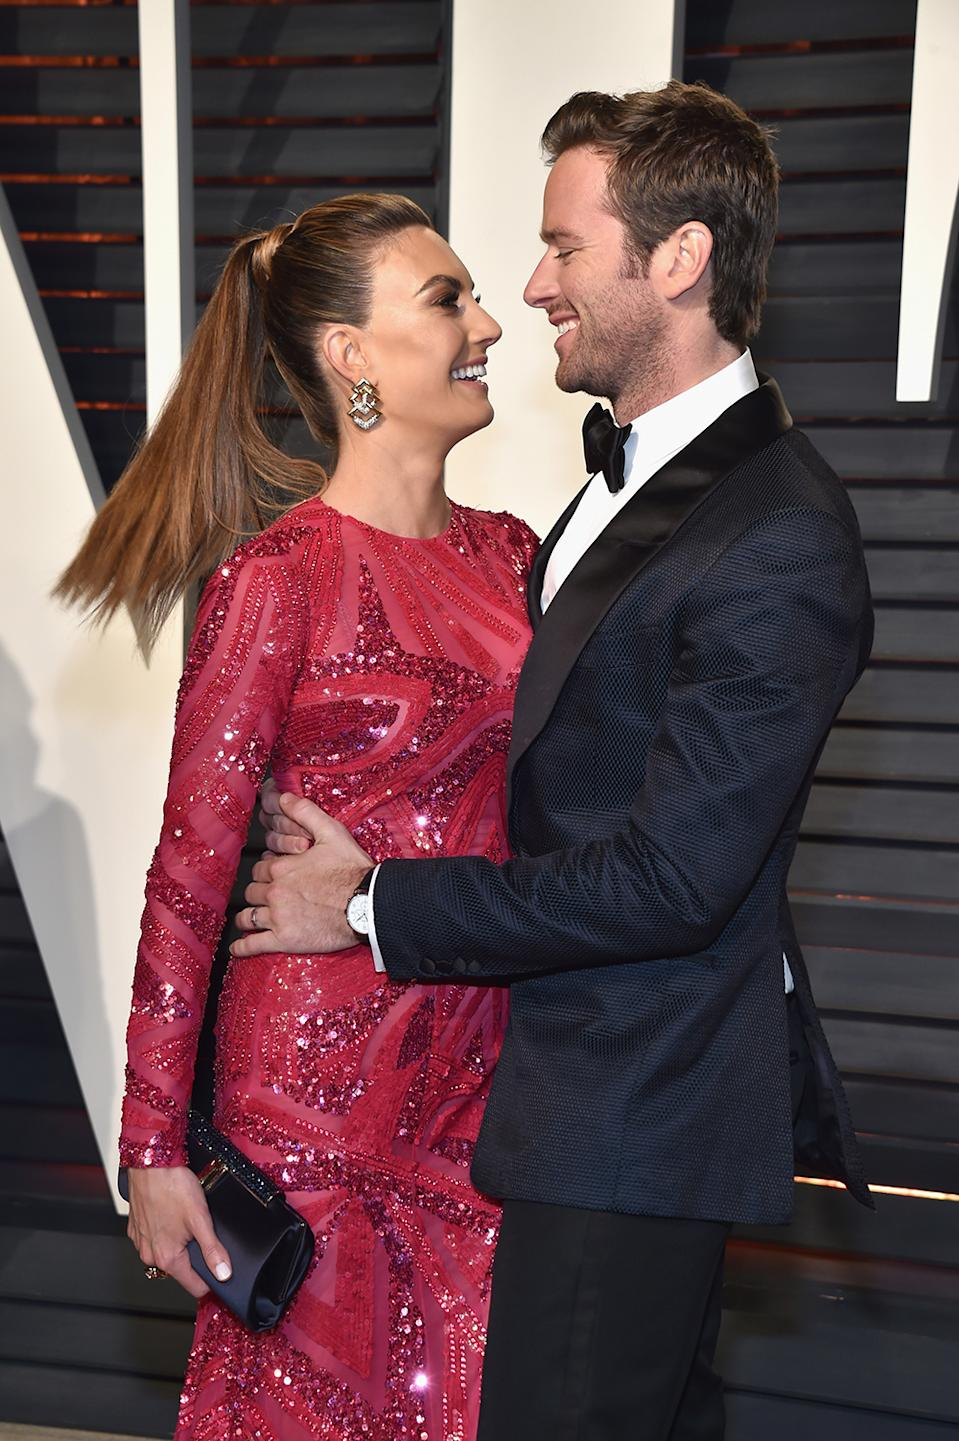 Armie Hammer and Elizabeth Chambers pose on the red carpet